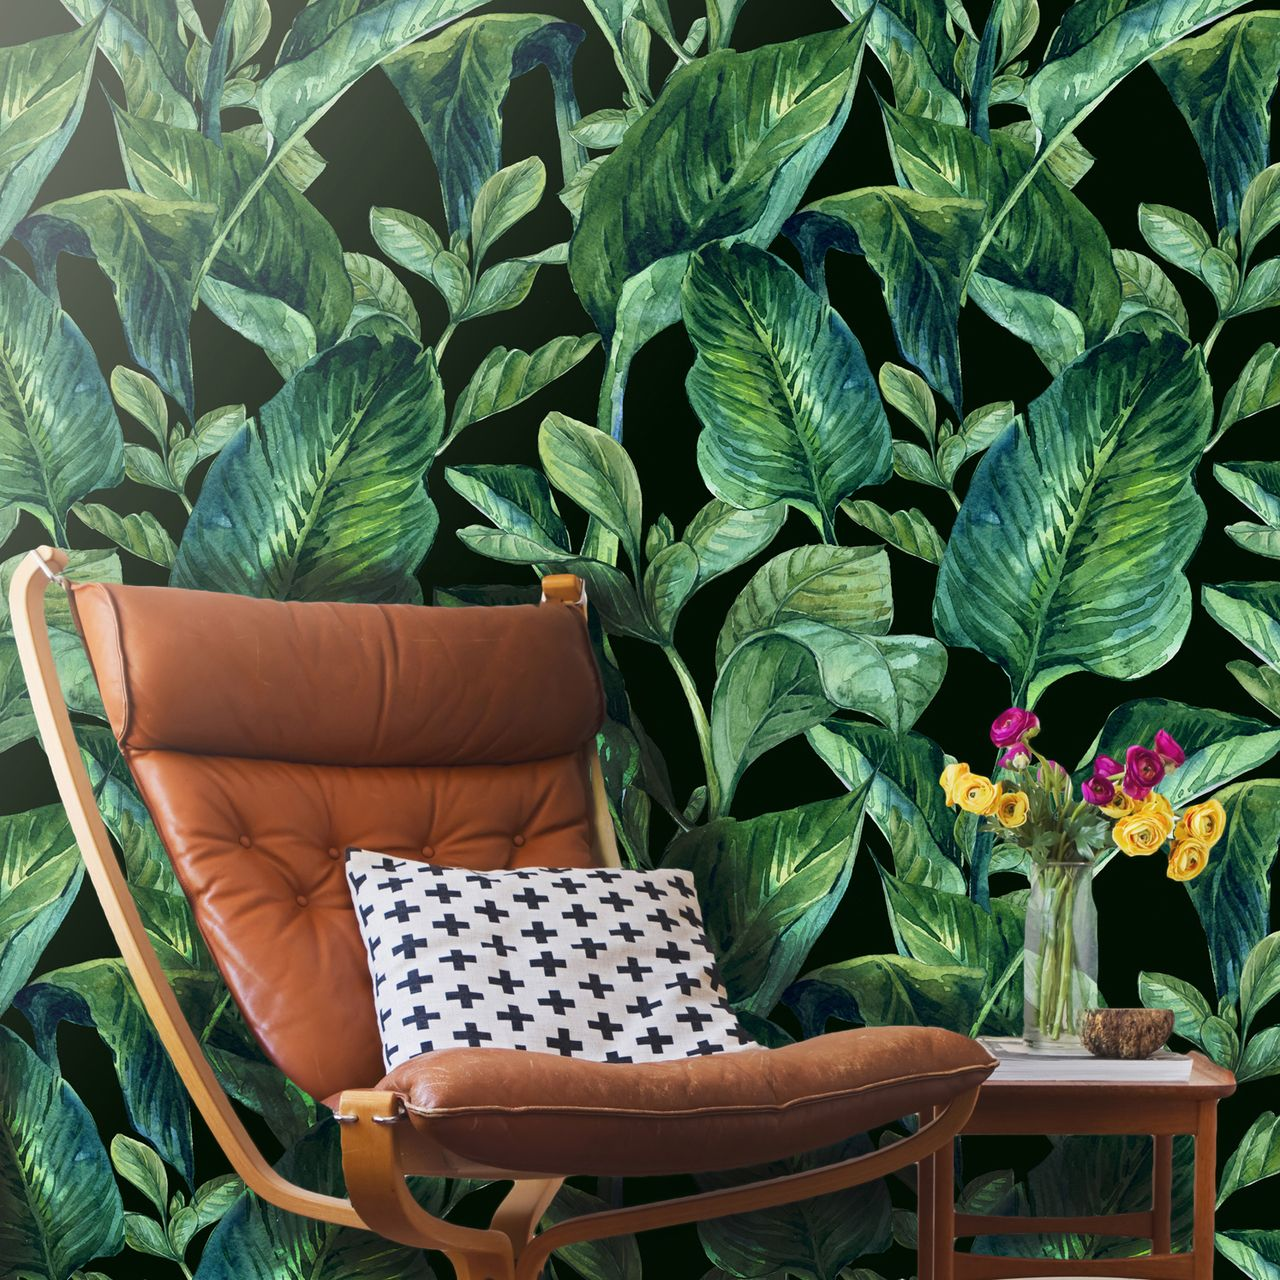 Large Murals Style Removable Wallpapers Can Transform Your Walls Self Adhesive Temporary Wallpaper